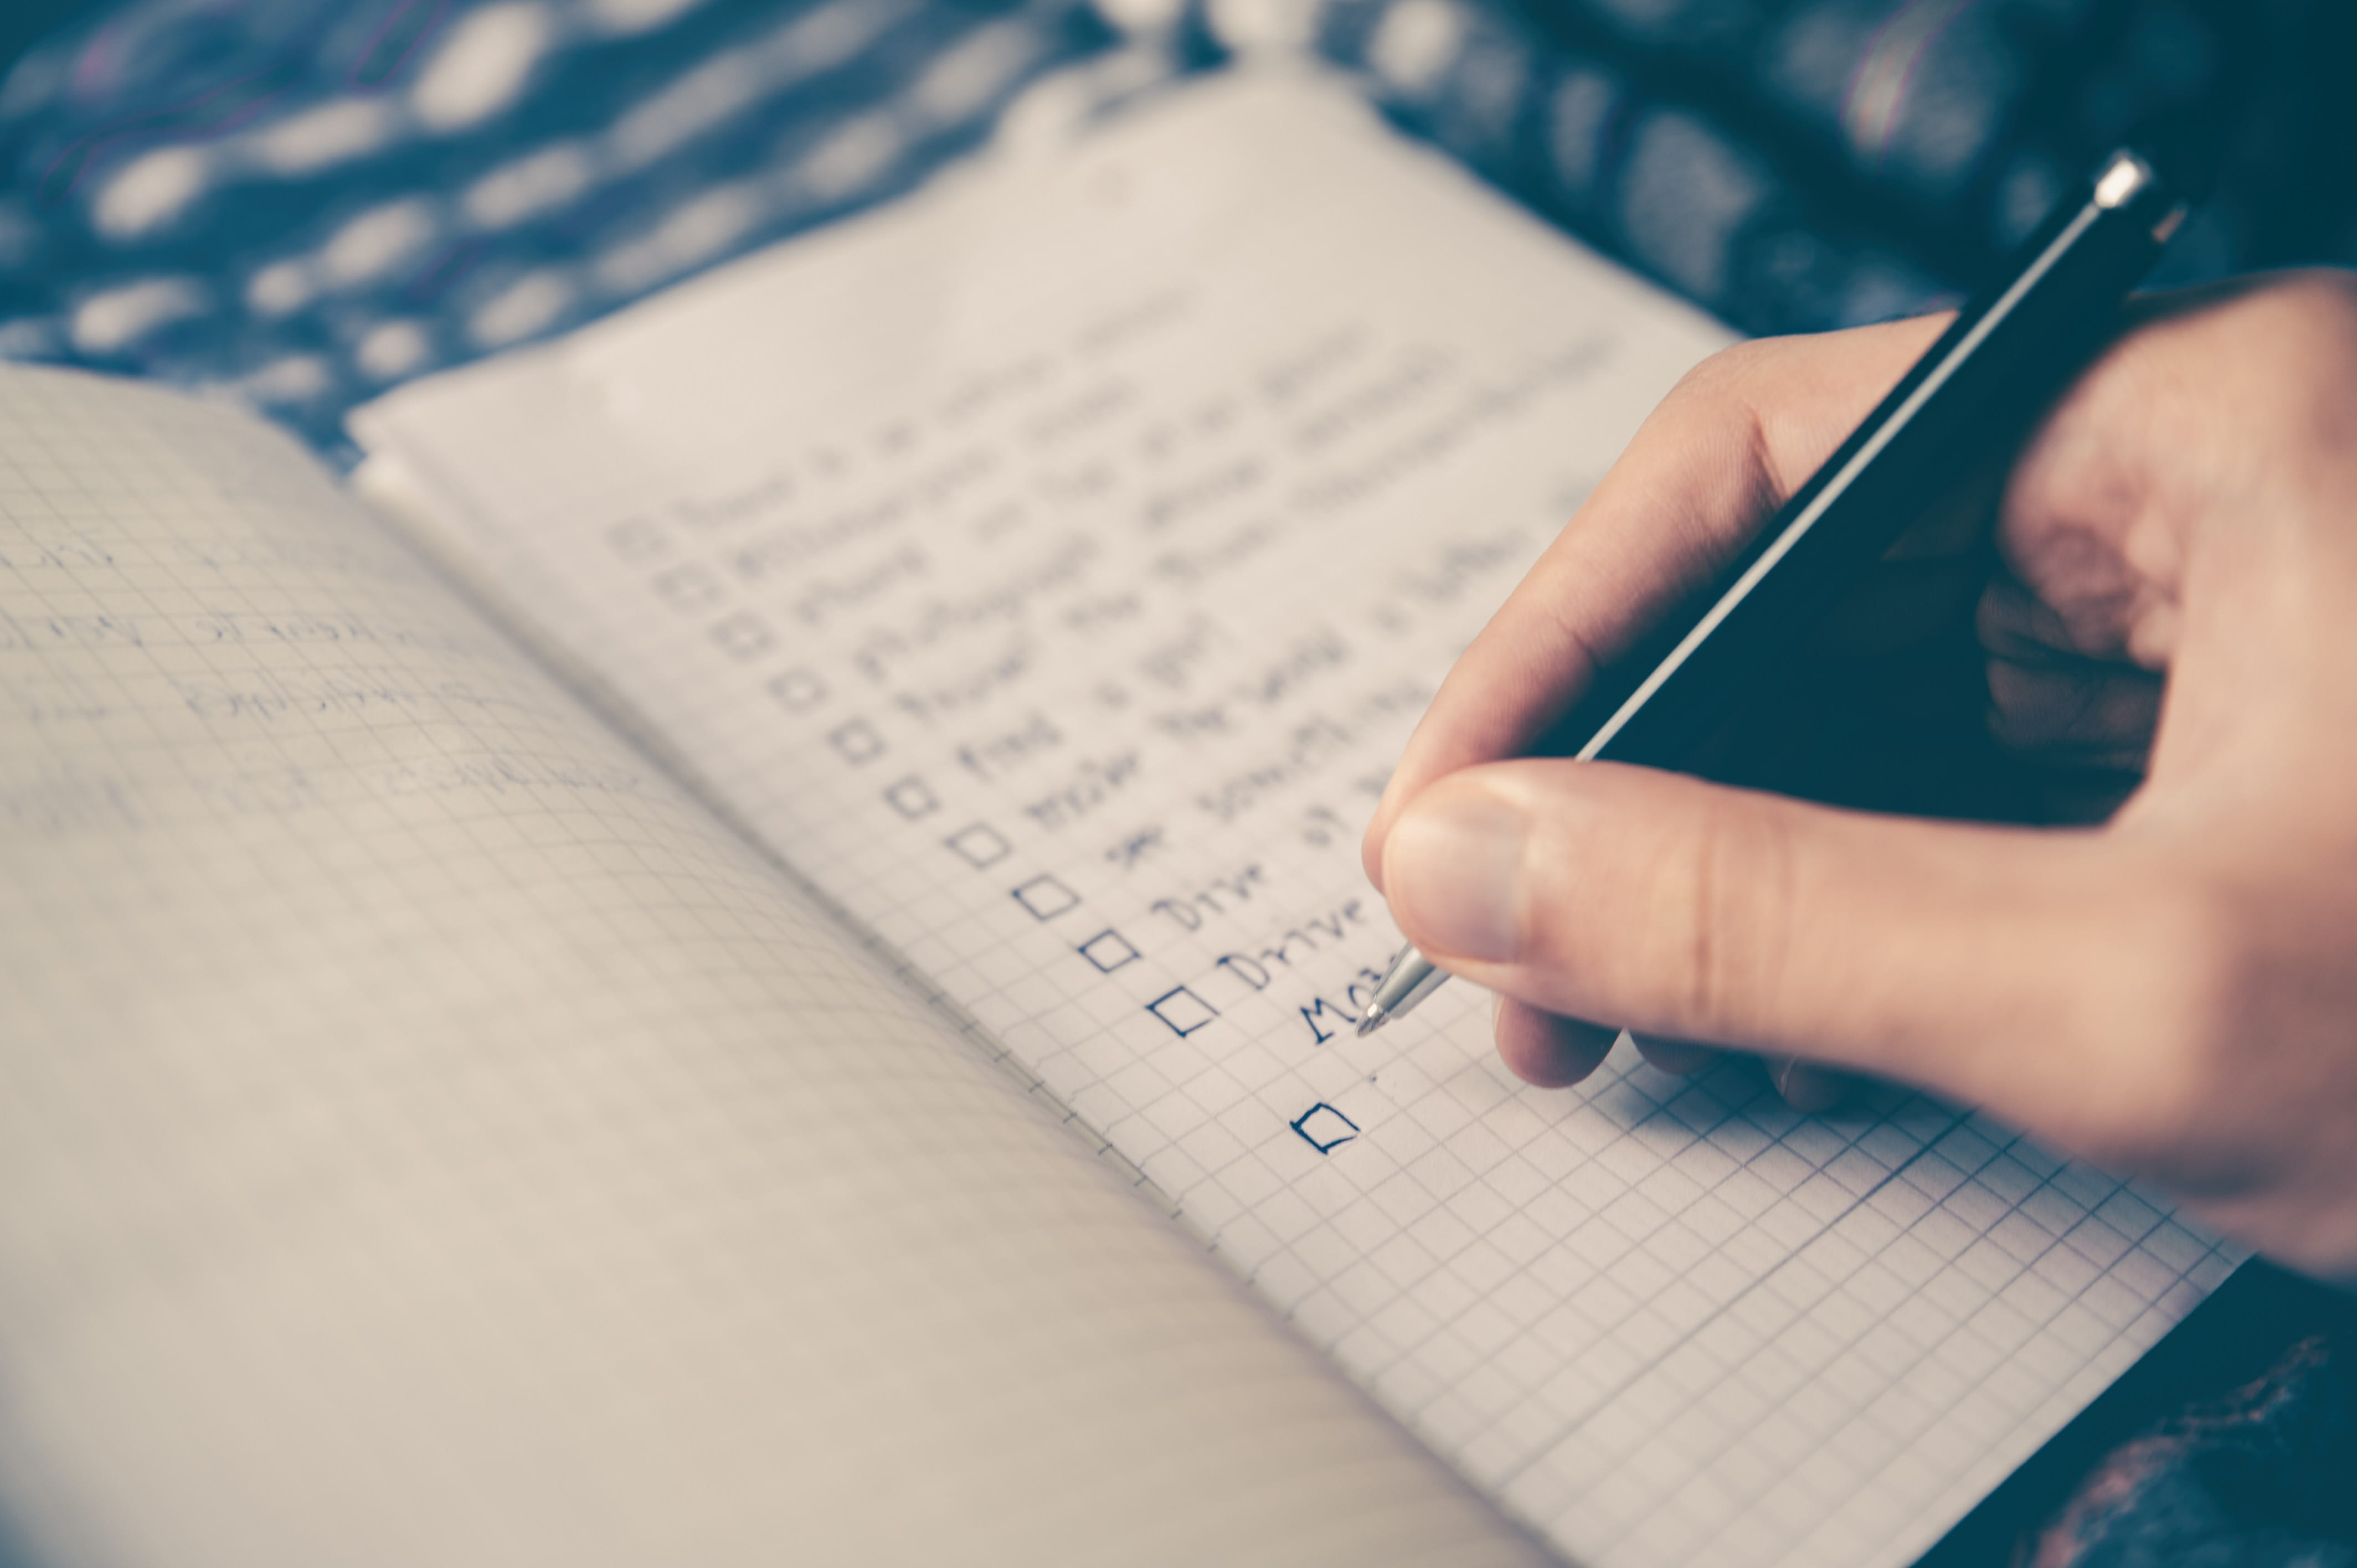 Person making a checklist of tasks; image by Glenn Carstens-Peters, via Unsplash.com.